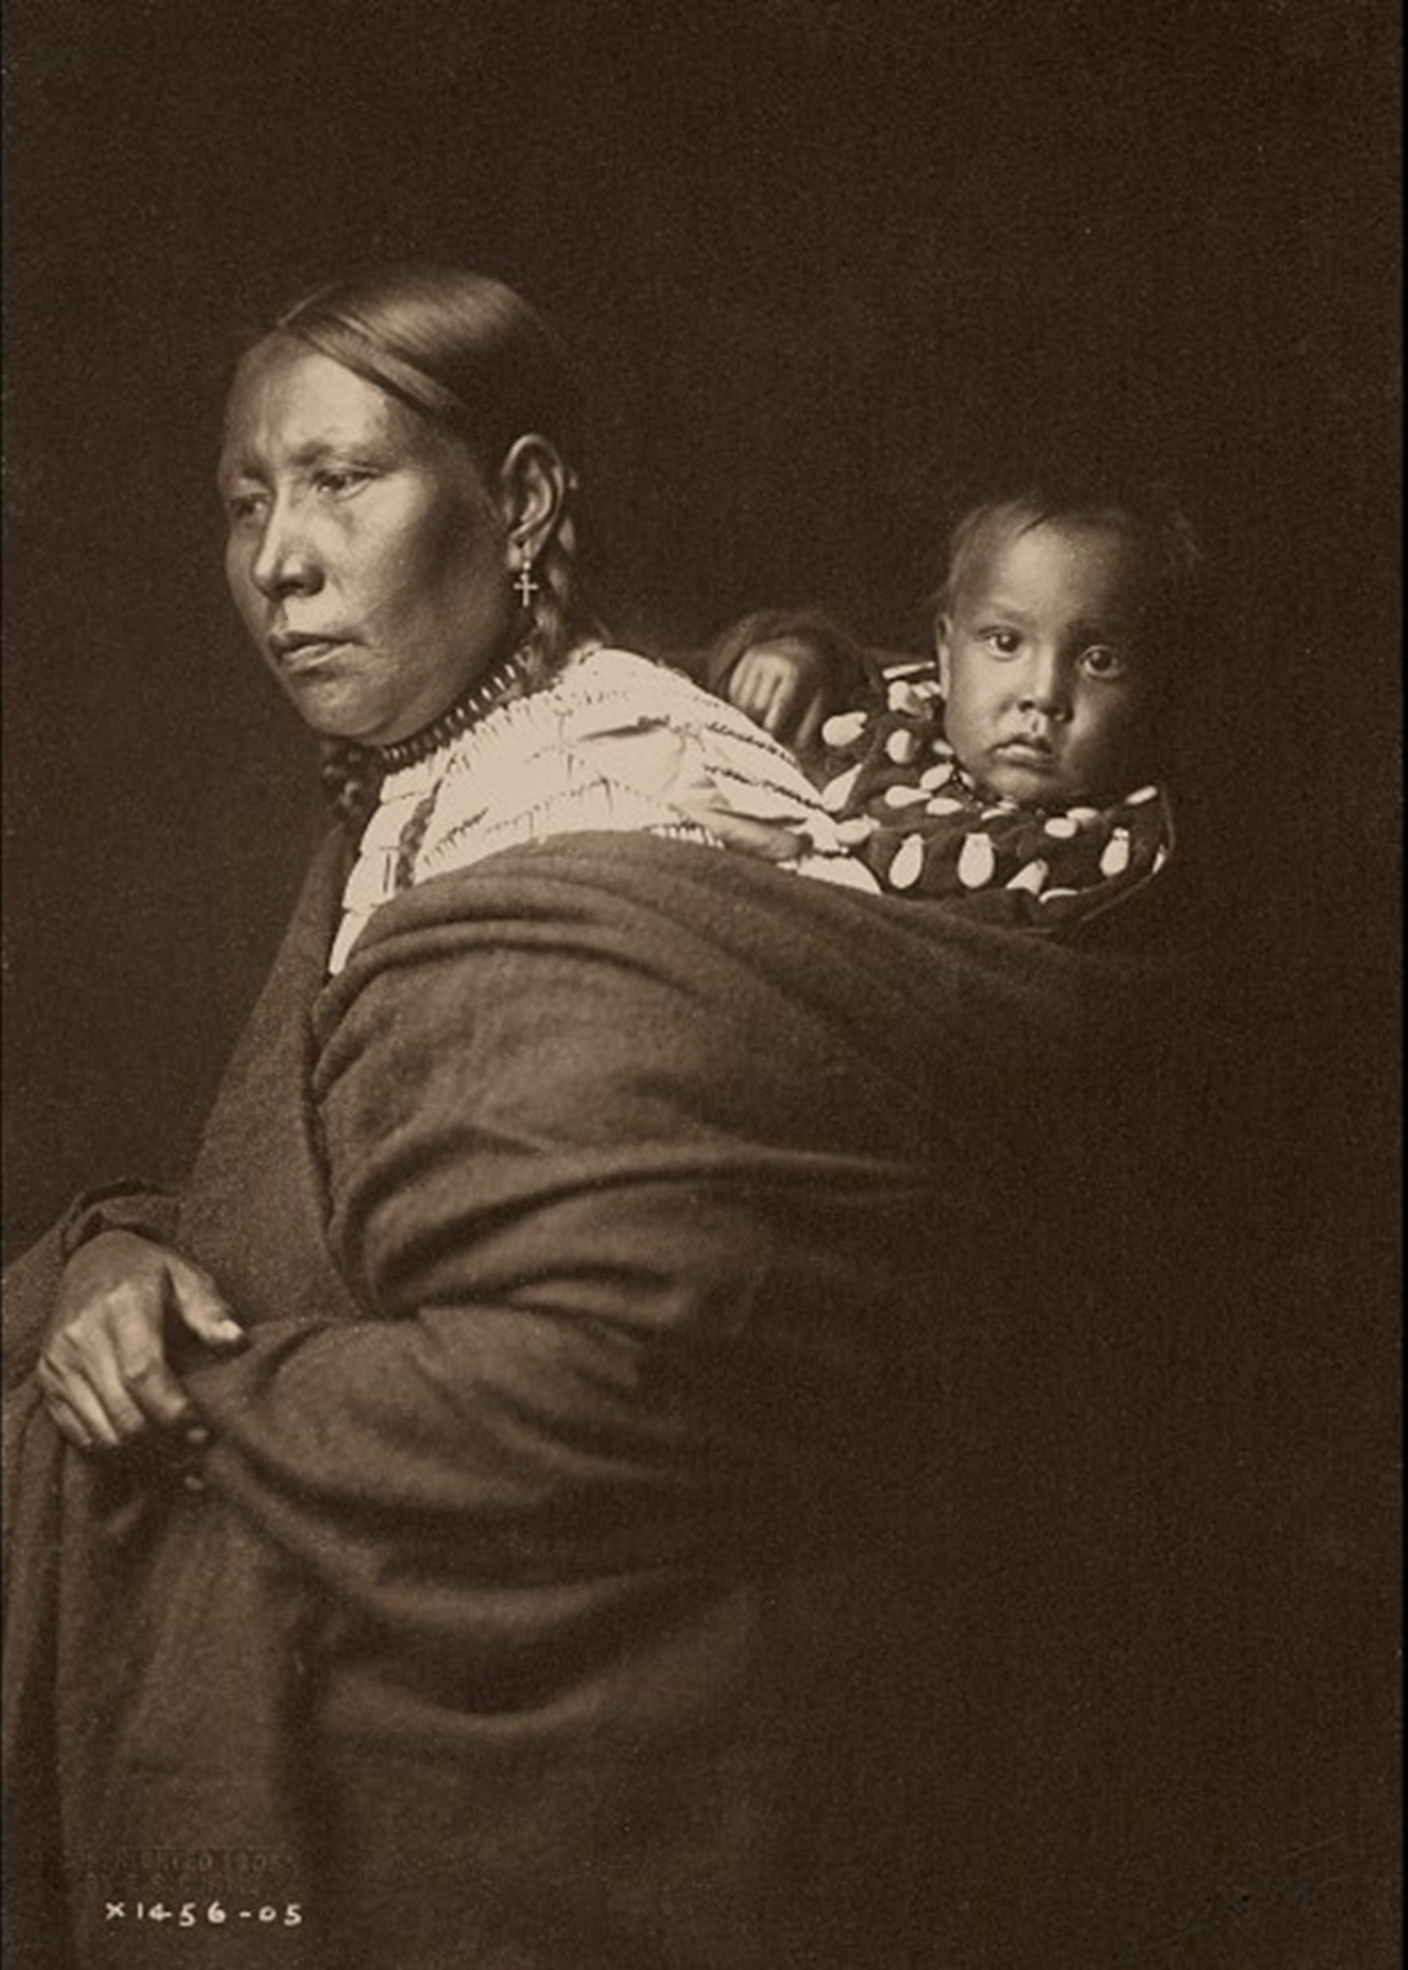 A Sioux Mother and Her Child (Edward S. Curtis, 1905)